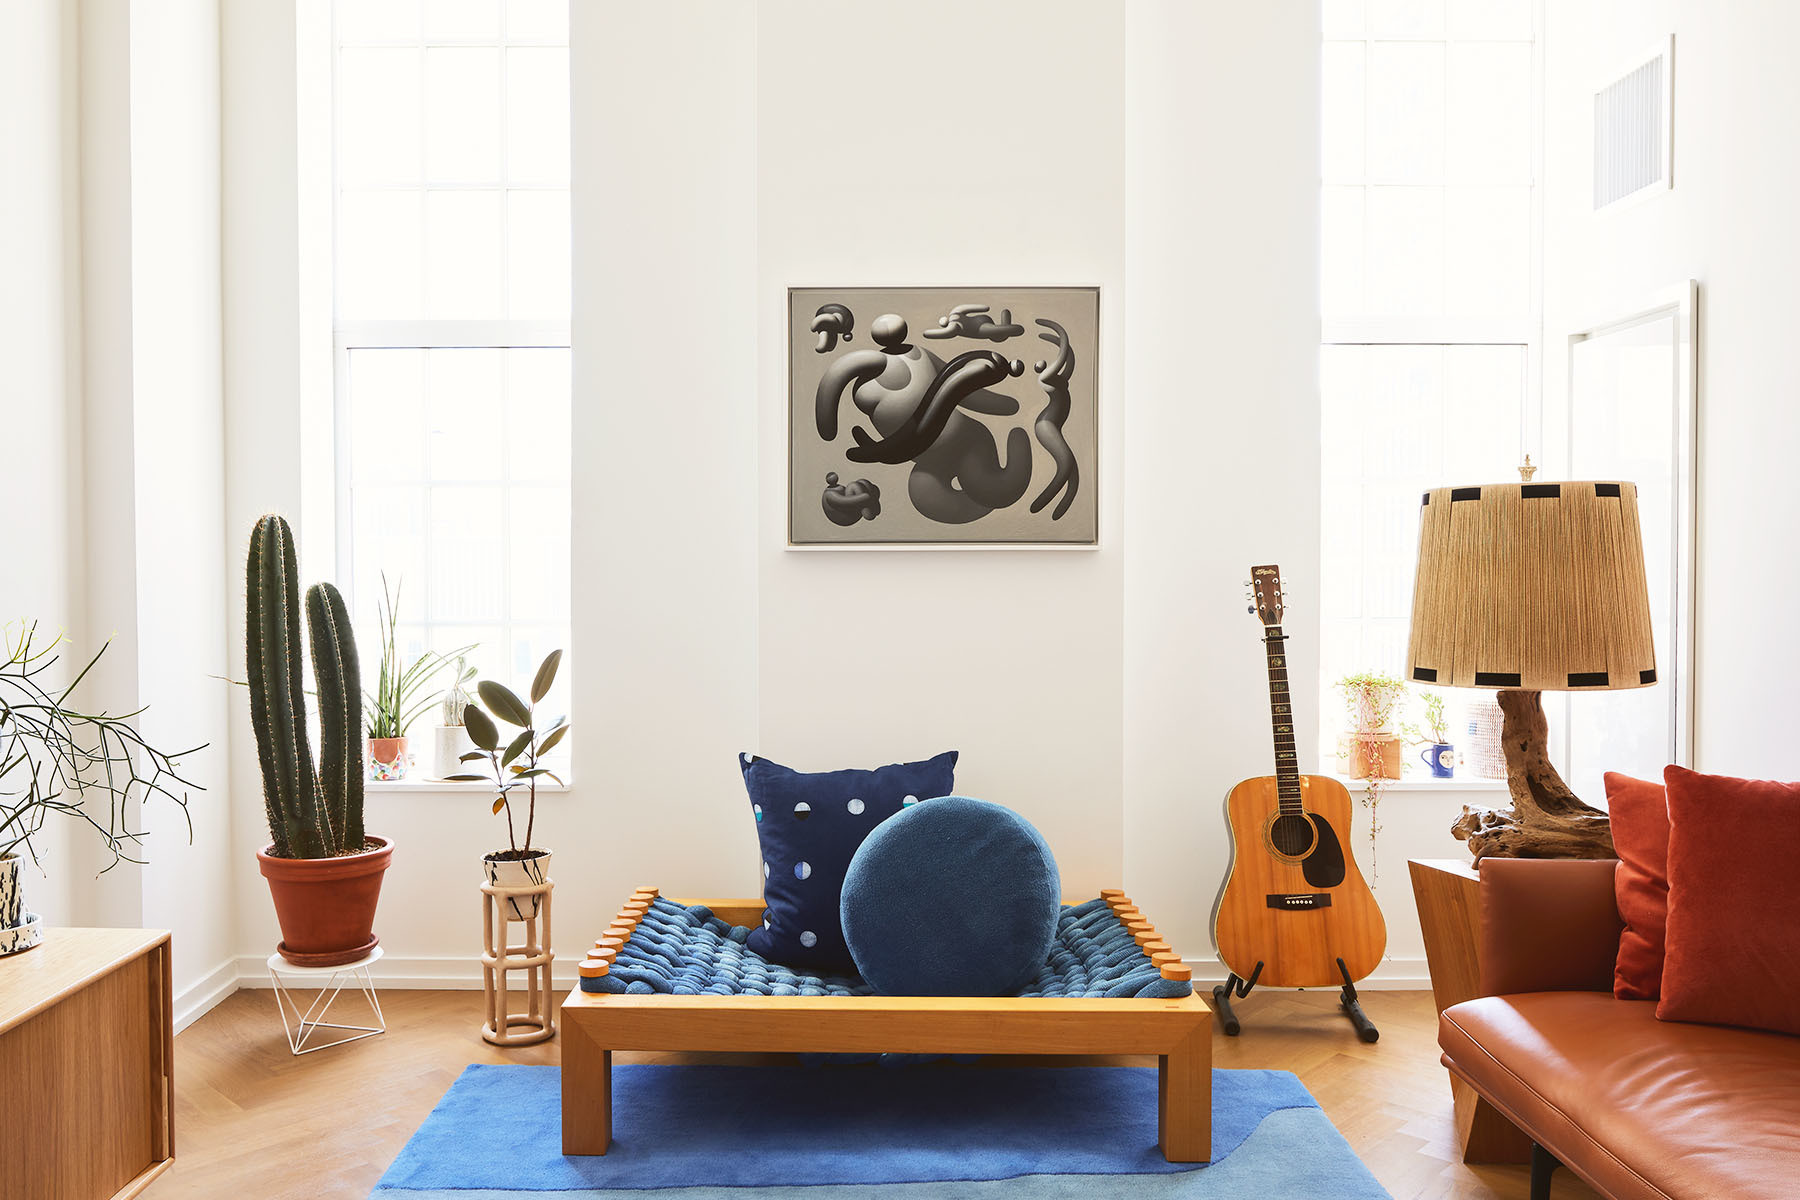 Virginia Sin's Williamsburg apartment showcases the designer's own unique creations. Design Within Reach Credenza | Sin Ceramics Planter | Cold Picnic Rug | Gubi Coffee Table | Vintage Guitar | Mike Lee Artwork | Vintage Floor Lamp | Muuto Sofa | Porter James Vintage Pillows | BTW, Group Partner Ceramics.